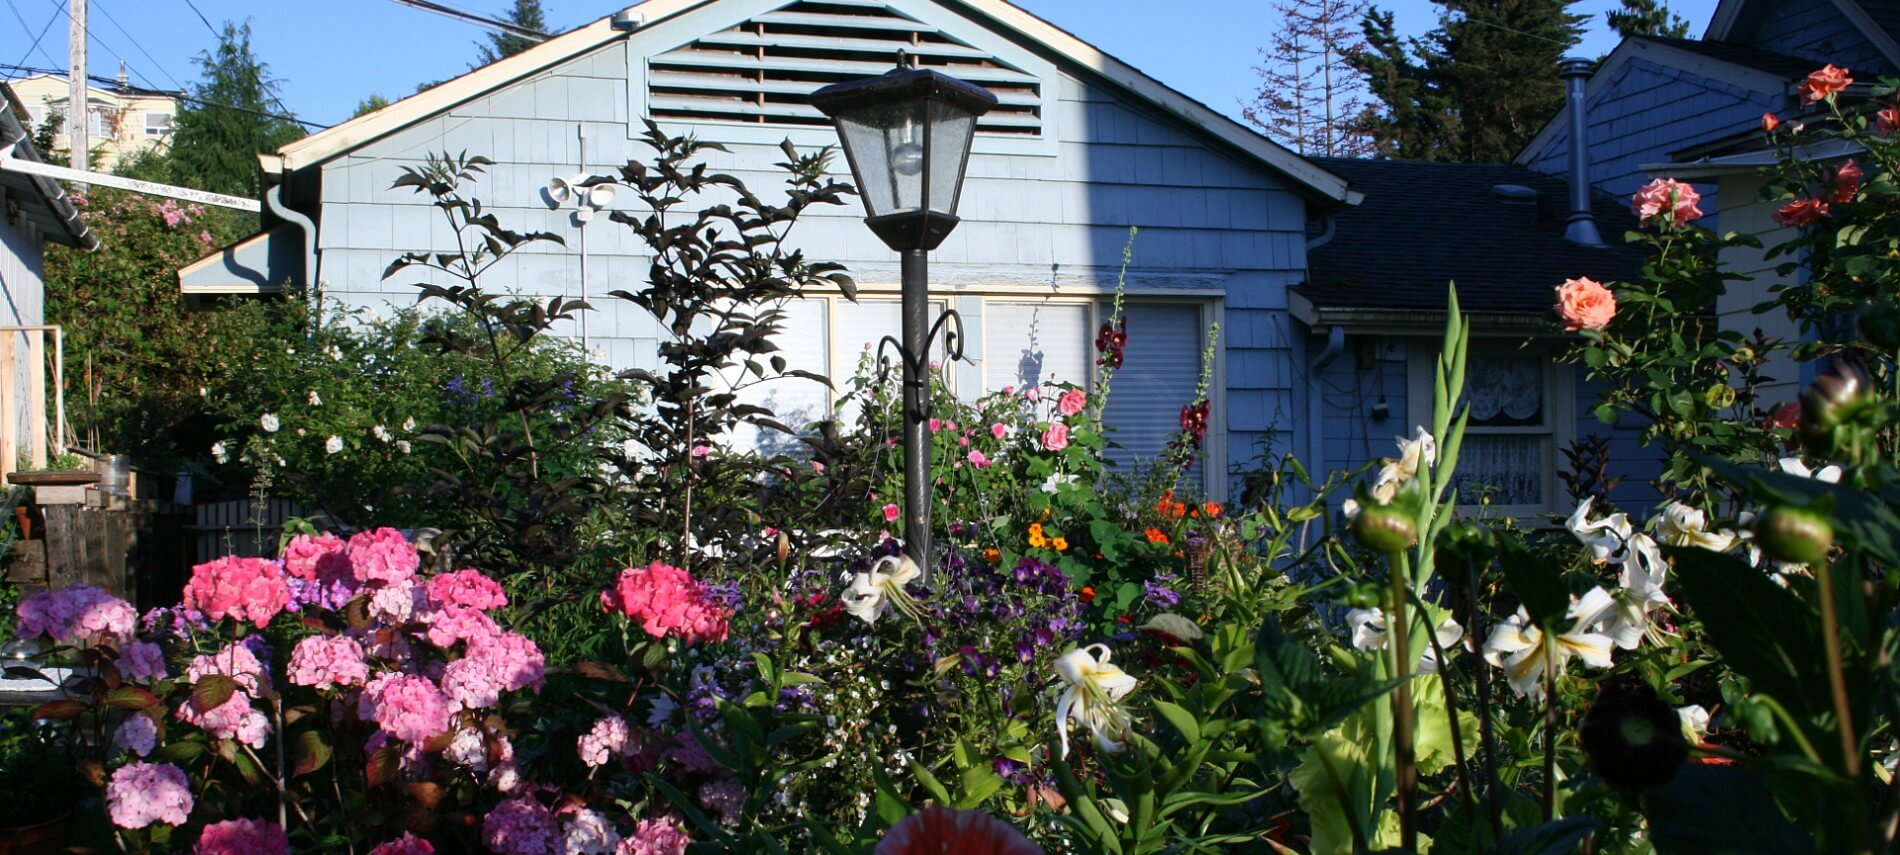 A garden with red, pink, white and yellow flowers next to a blue house.